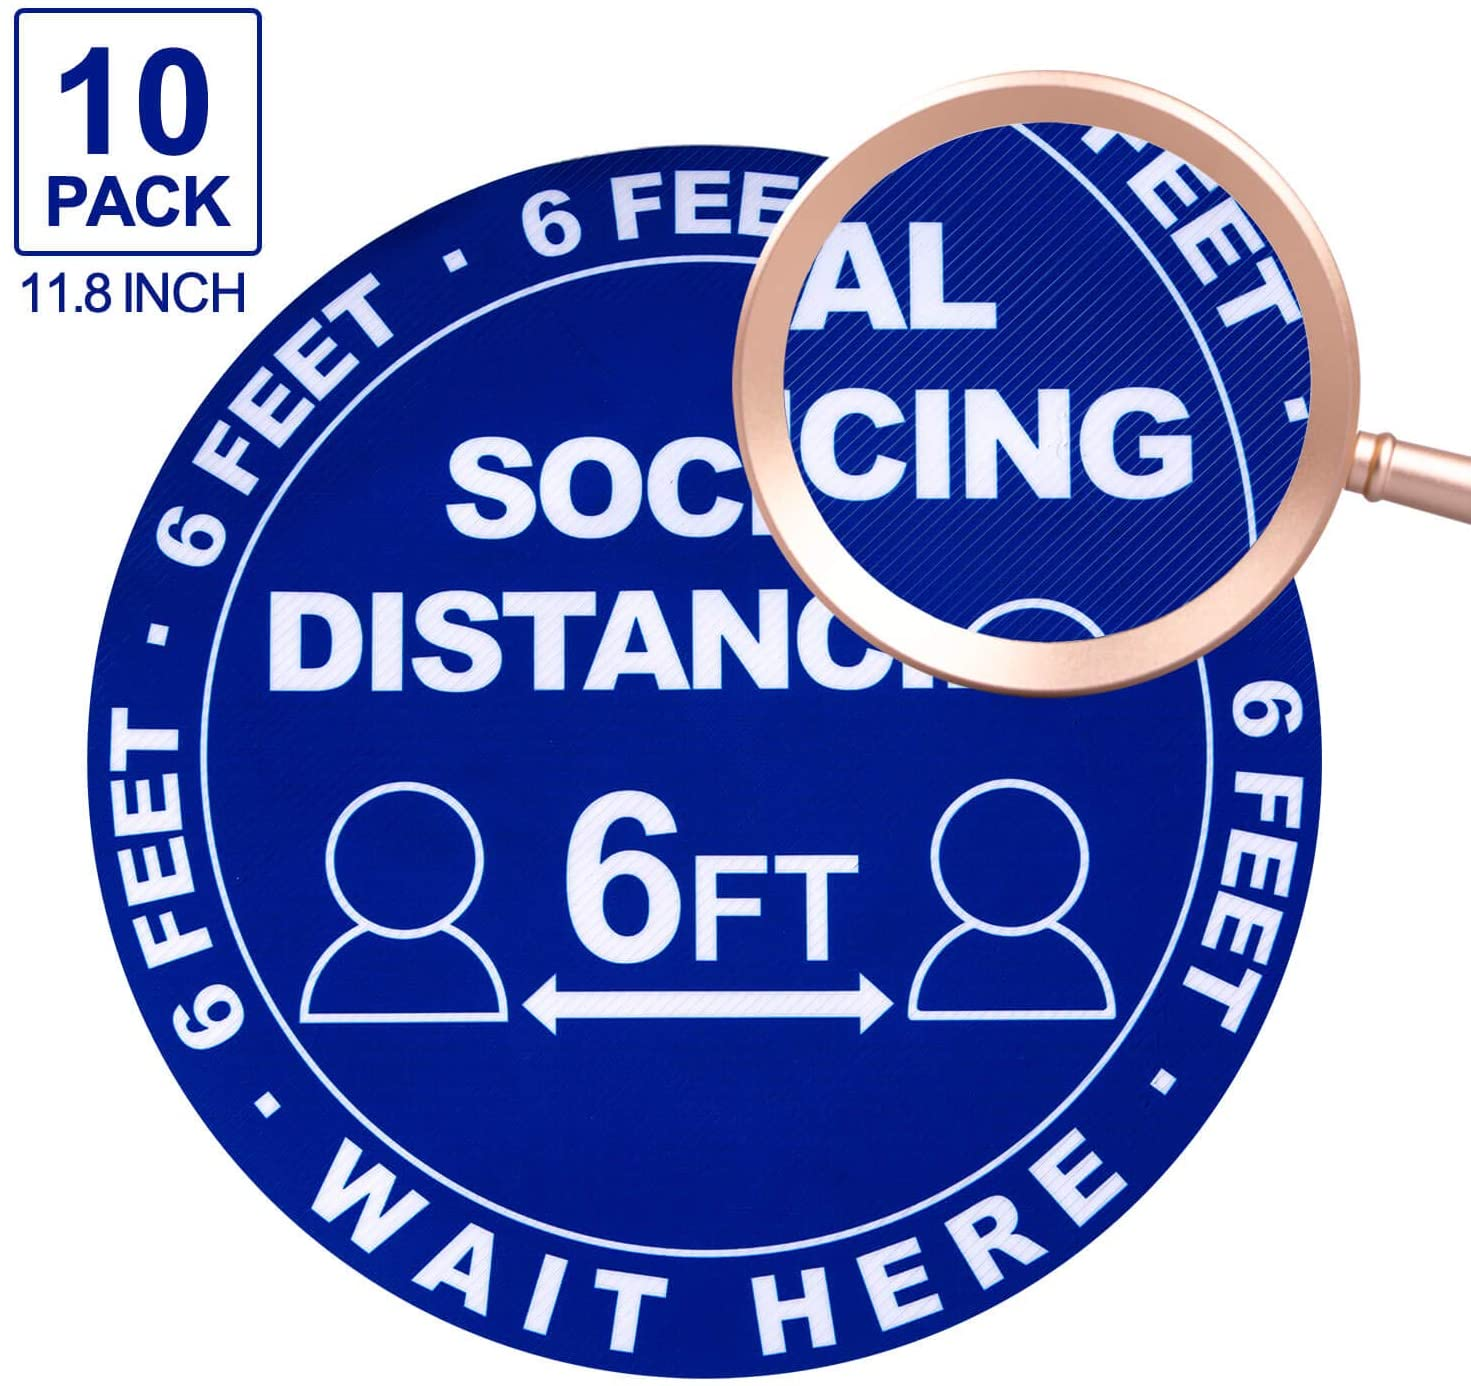 Social Distancing Floor Decals Stickers - 6FT Distance Floor Sticker, Stand Here 6 Feet Apart Sign, 11.8 Inch Round Waterproof Adhesive Anti-Slip Lamination Easy to Clean(10 Pack) (Blue-Texture)